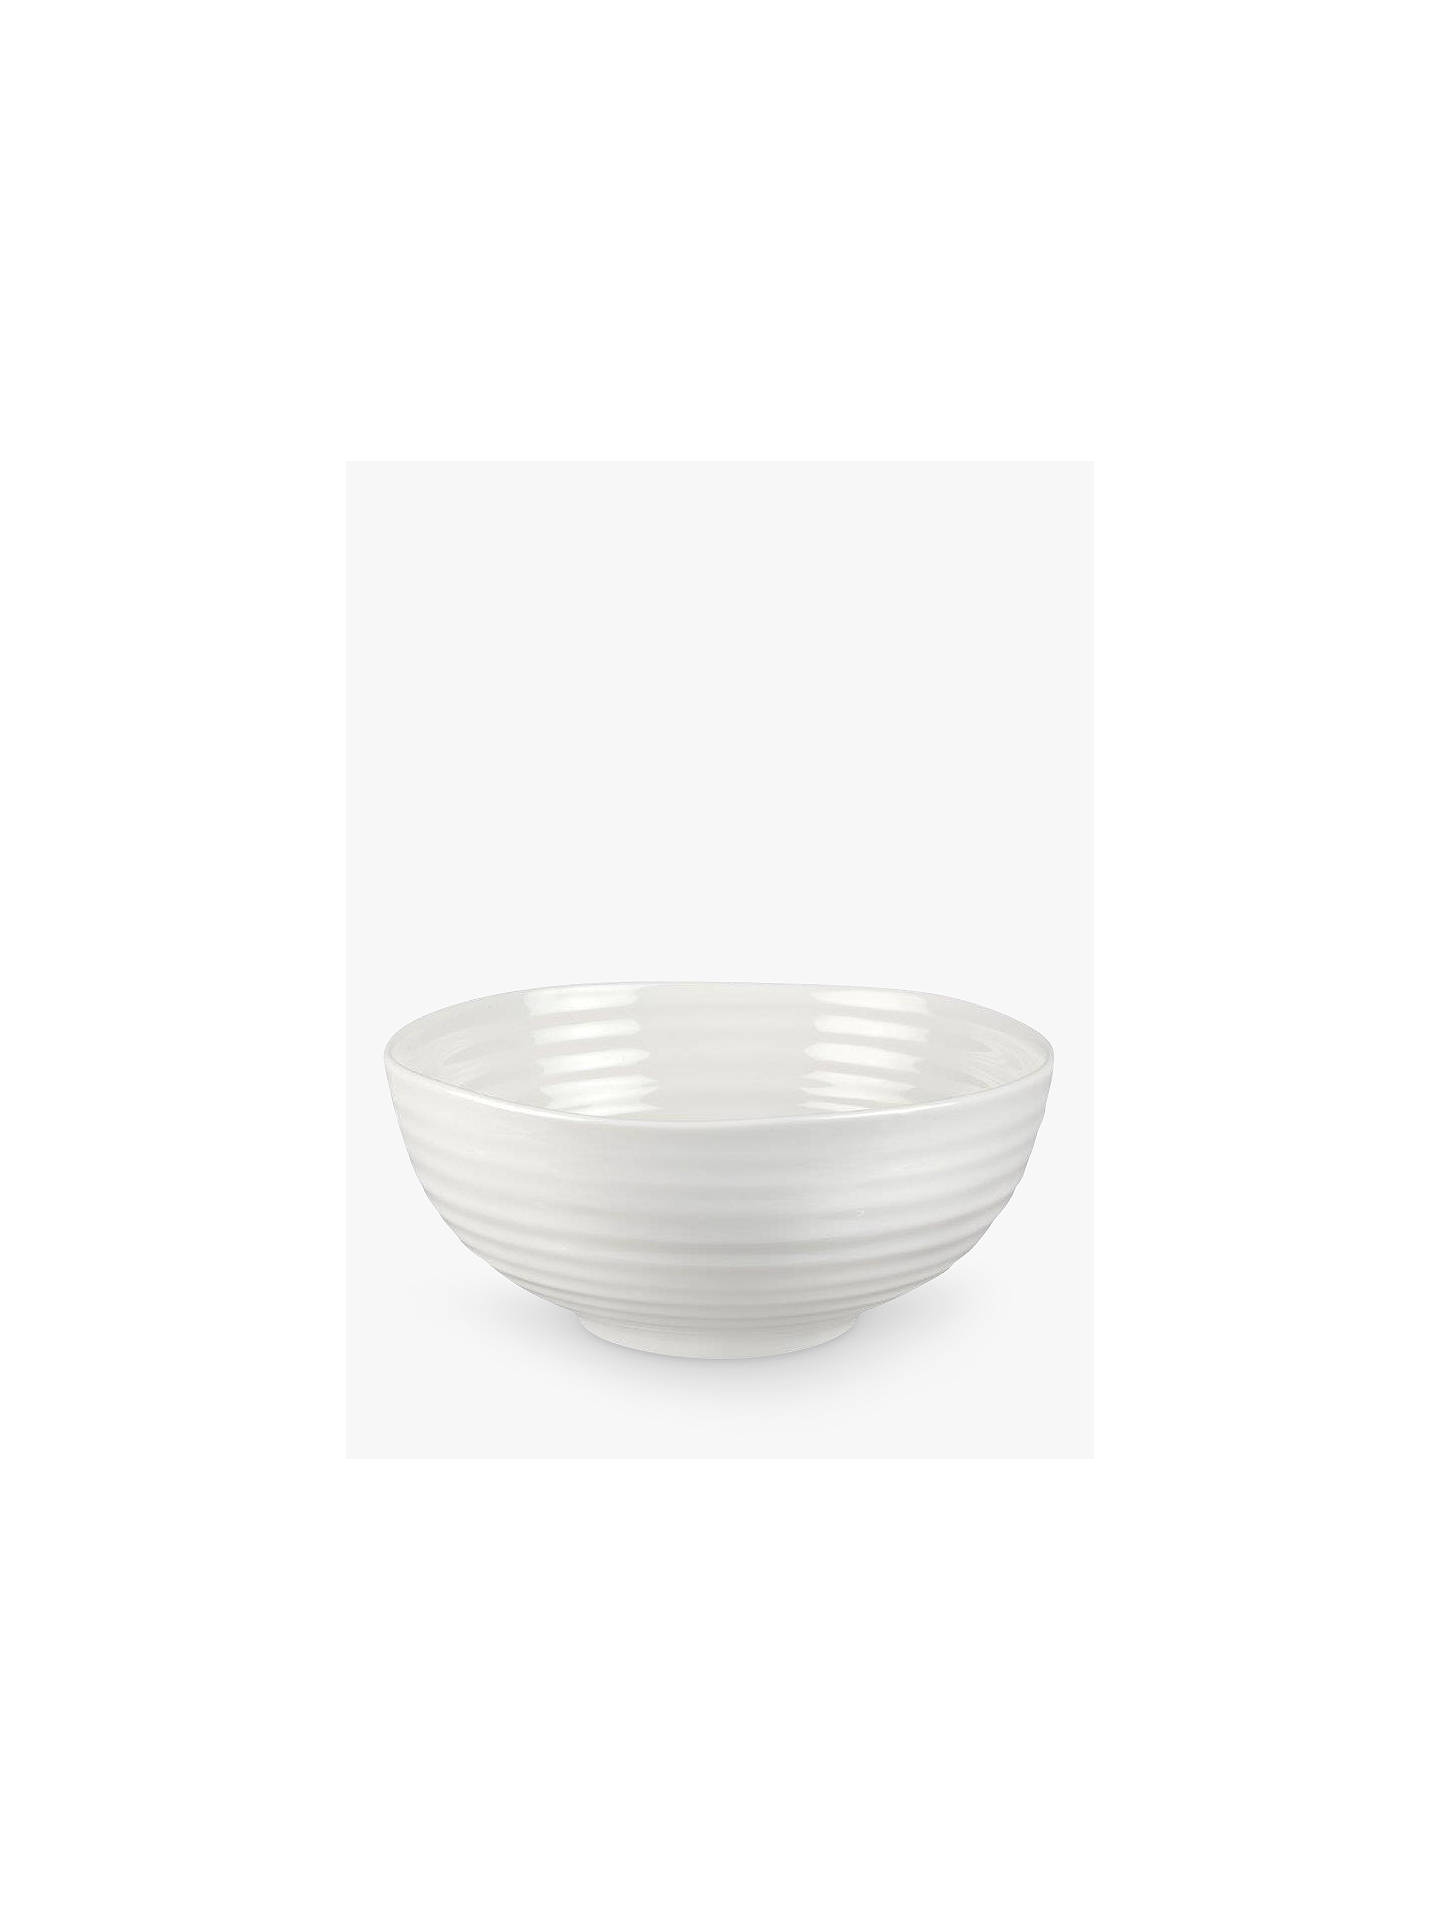 BuySophie Conran for Portmeirion 18cm Noodle Bowl Online at johnlewis.com